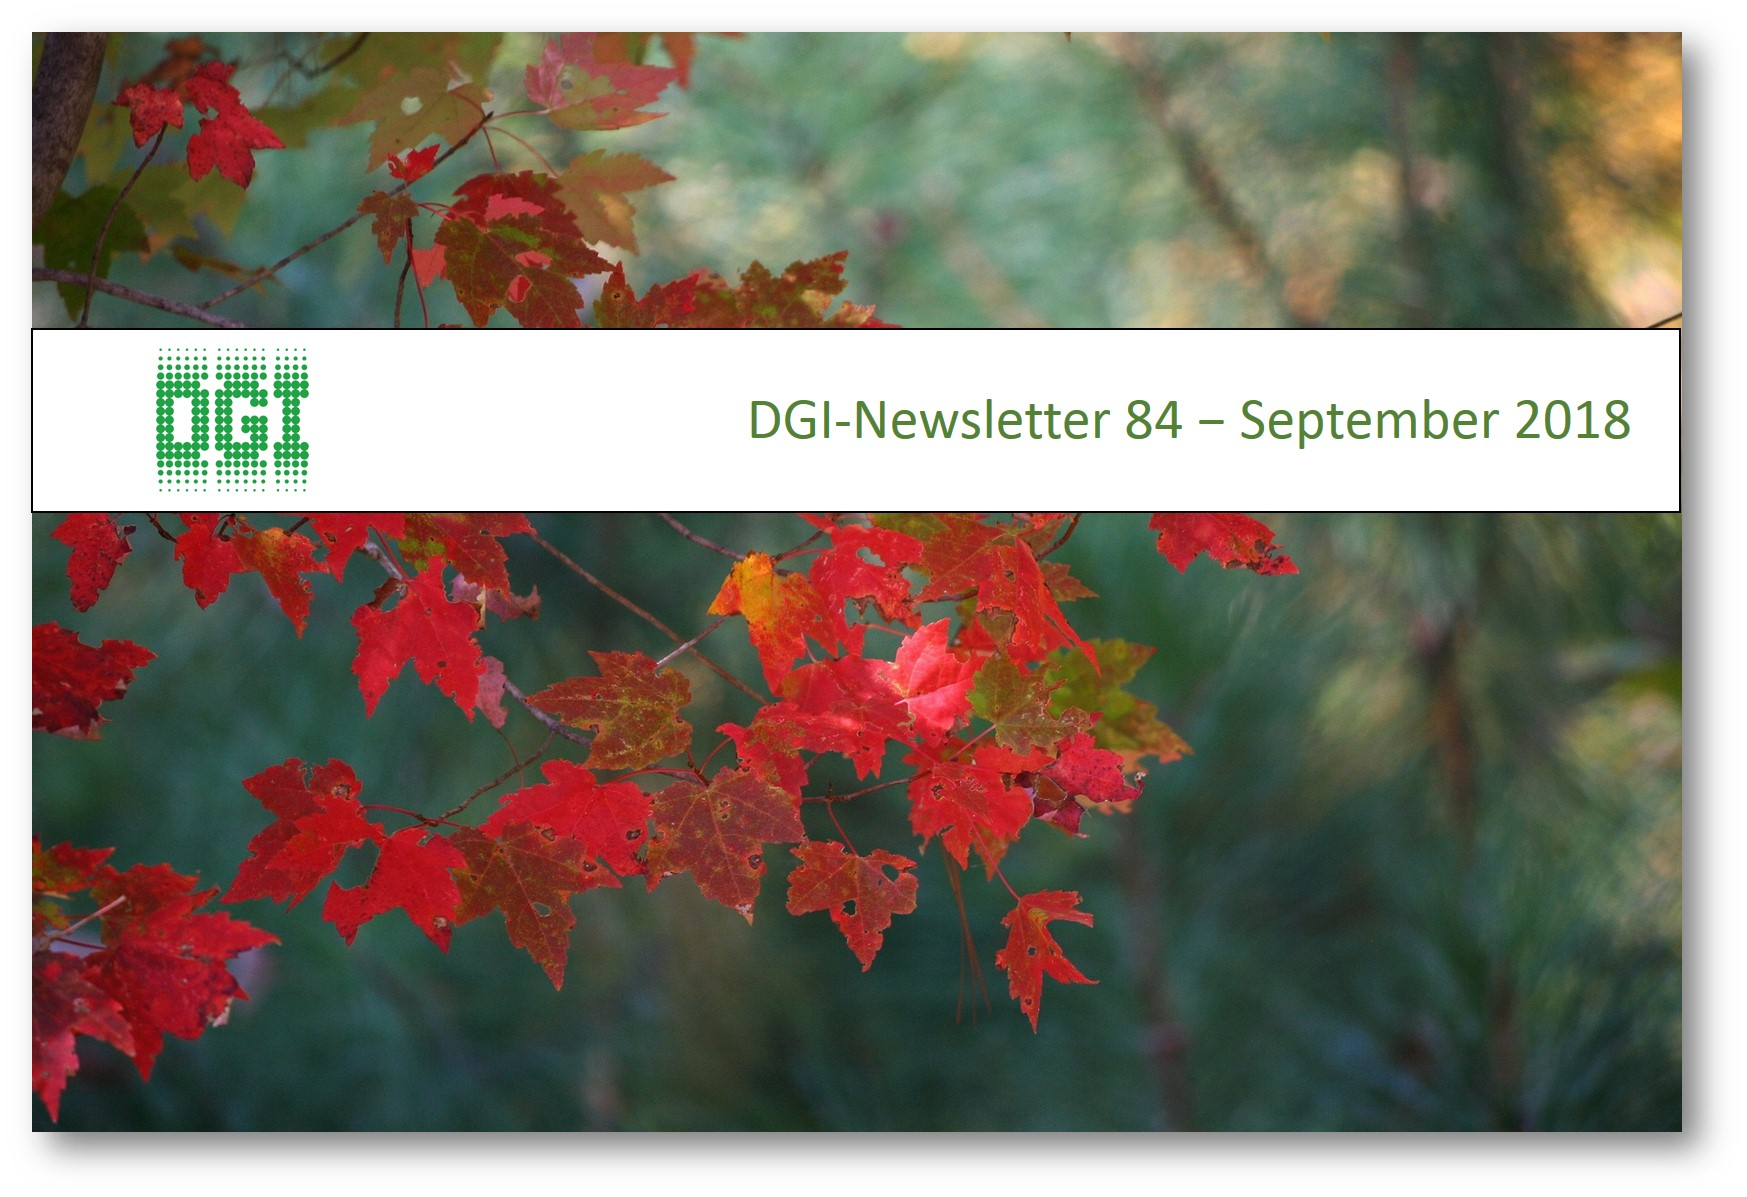 DGI-Newsletter 84 – September 2018